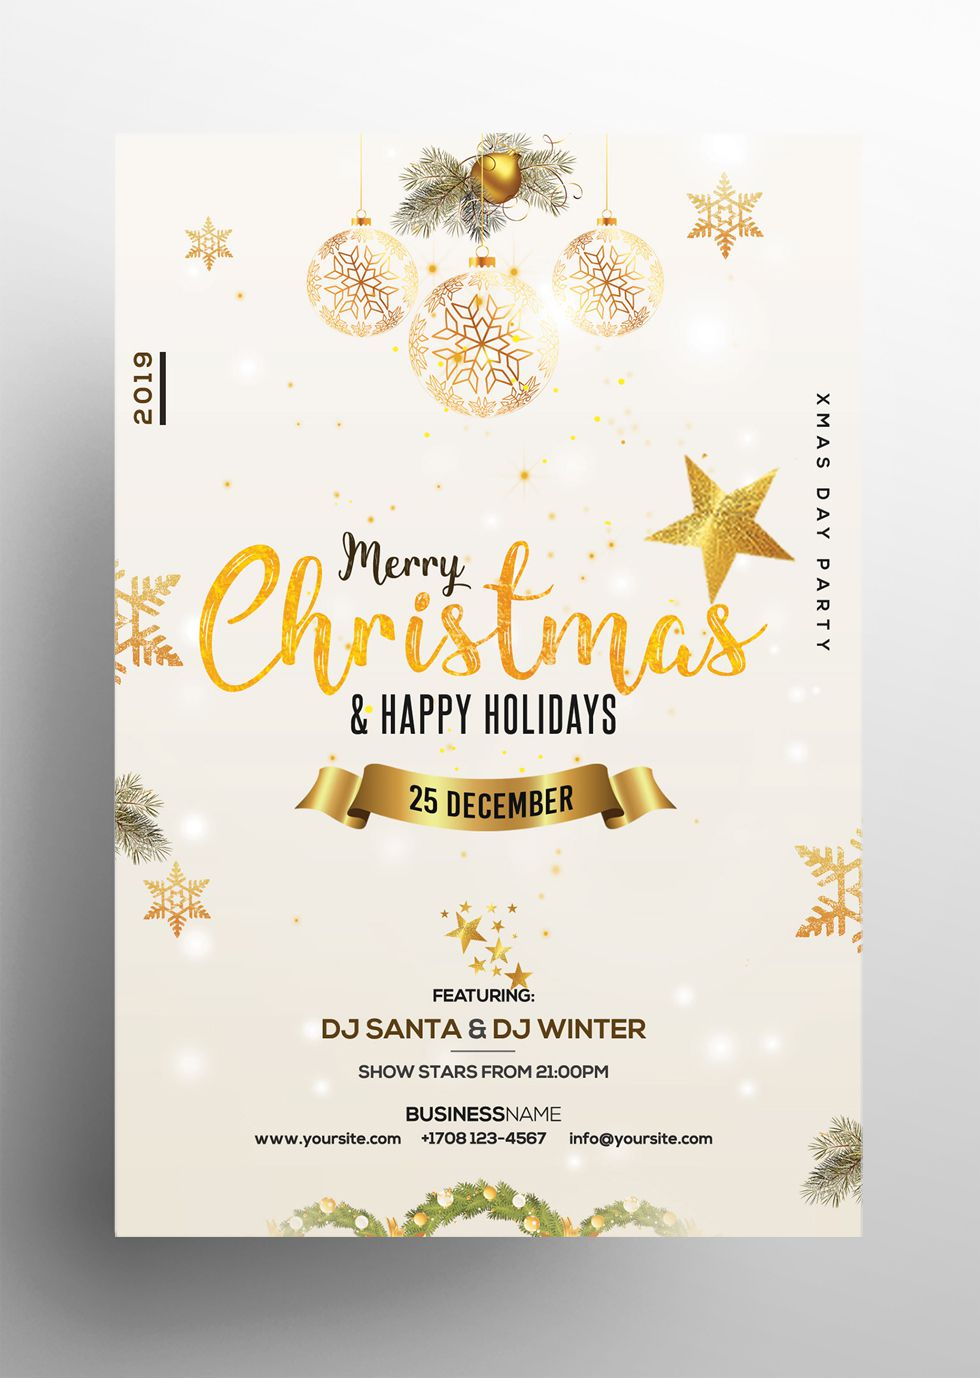 005 Excellent Free Holiday Flyer Template High Definition  Templates For Word Printable ChristmaFull